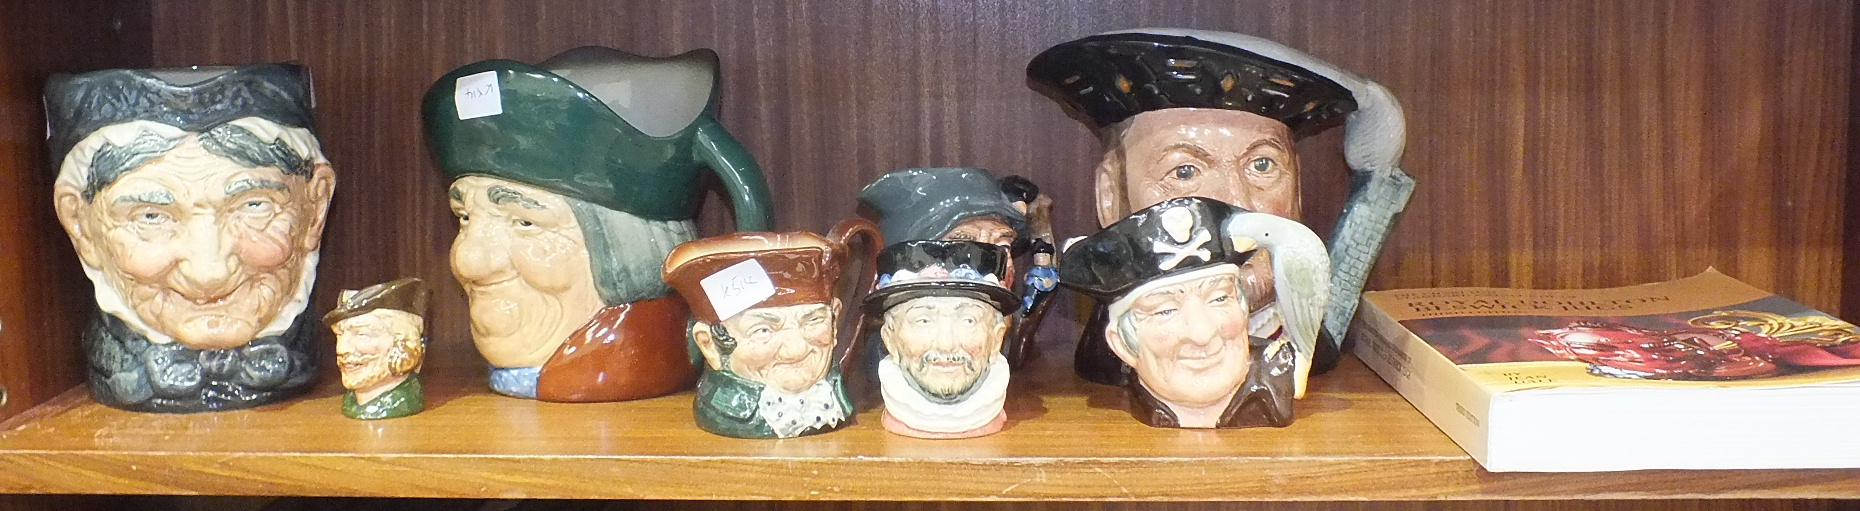 Three Royal Doulton character jugs, 'Henry VIII', 'Toby Philpots' and 'Granny' (with tooth) and five